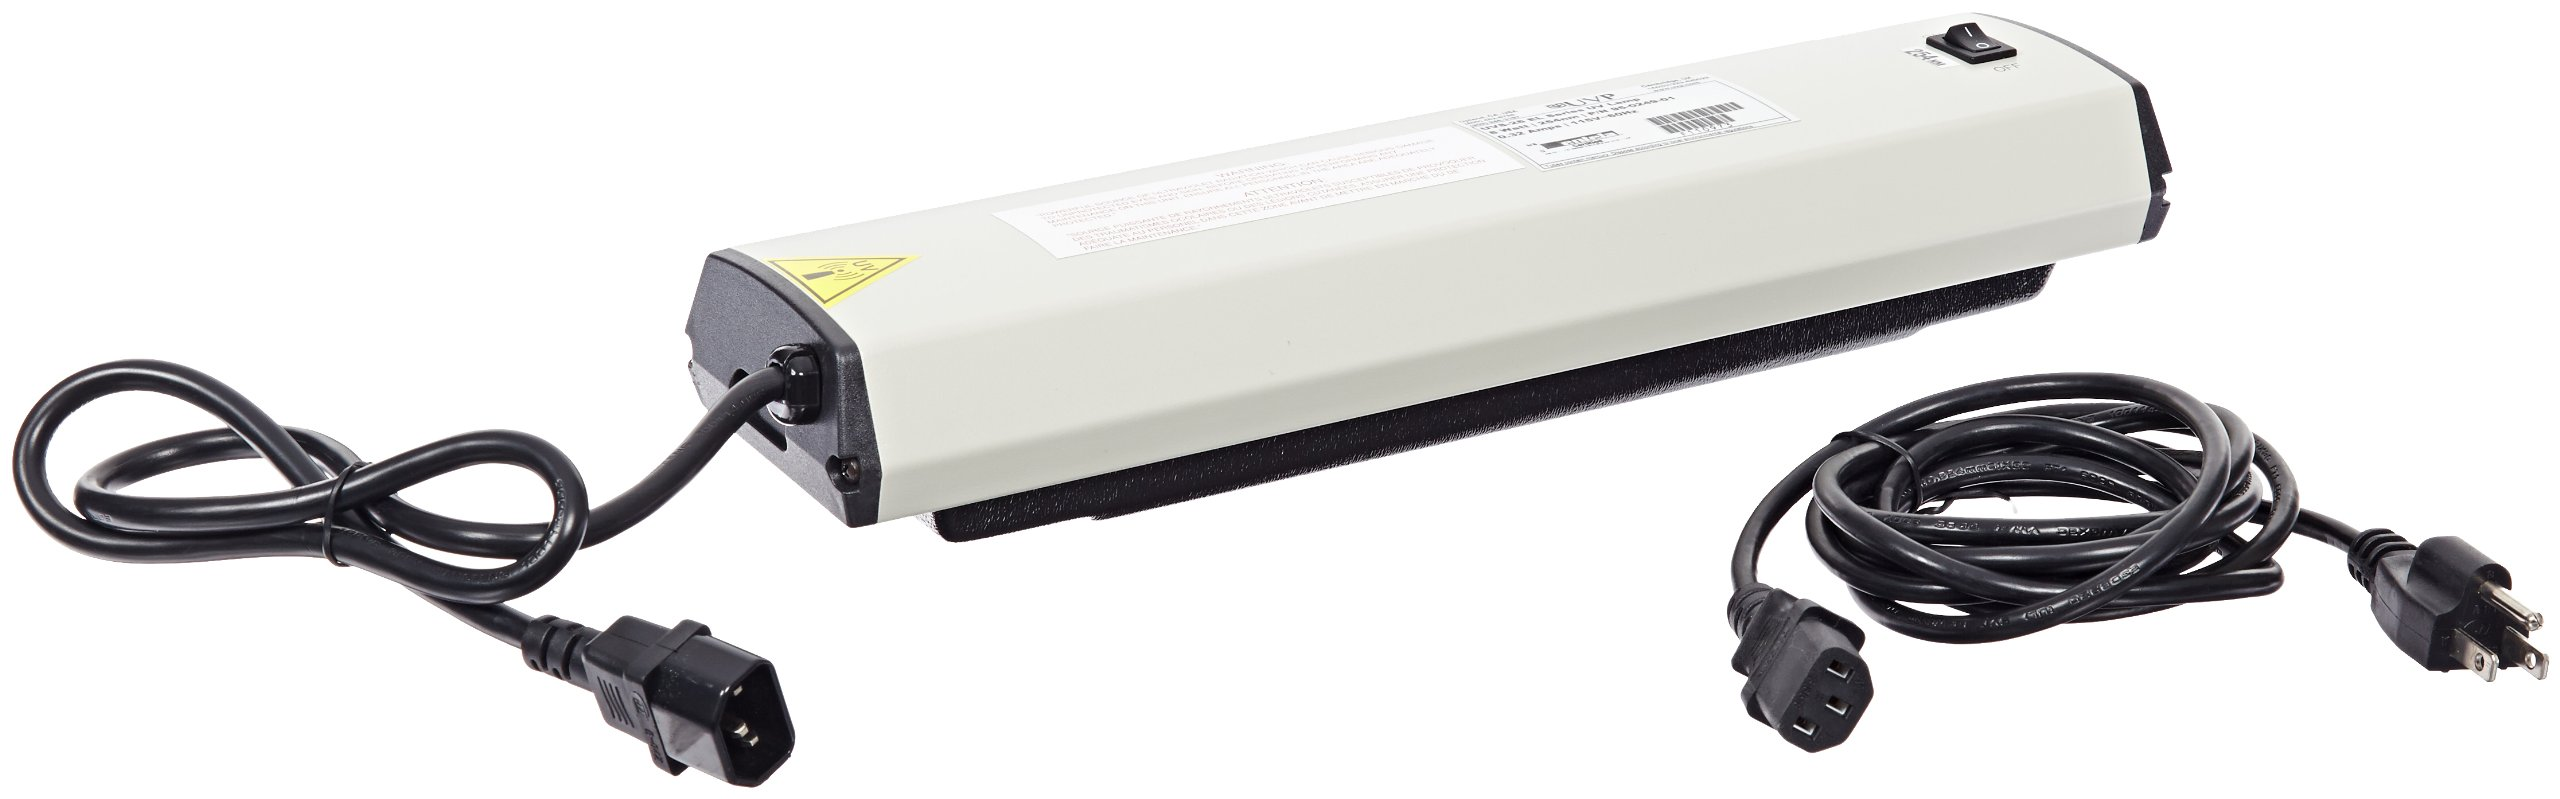 UVP 95-0249-01 Model UVS-28 EL Series Eight Watt UV Lamp, 254nm Wavelength, 115V